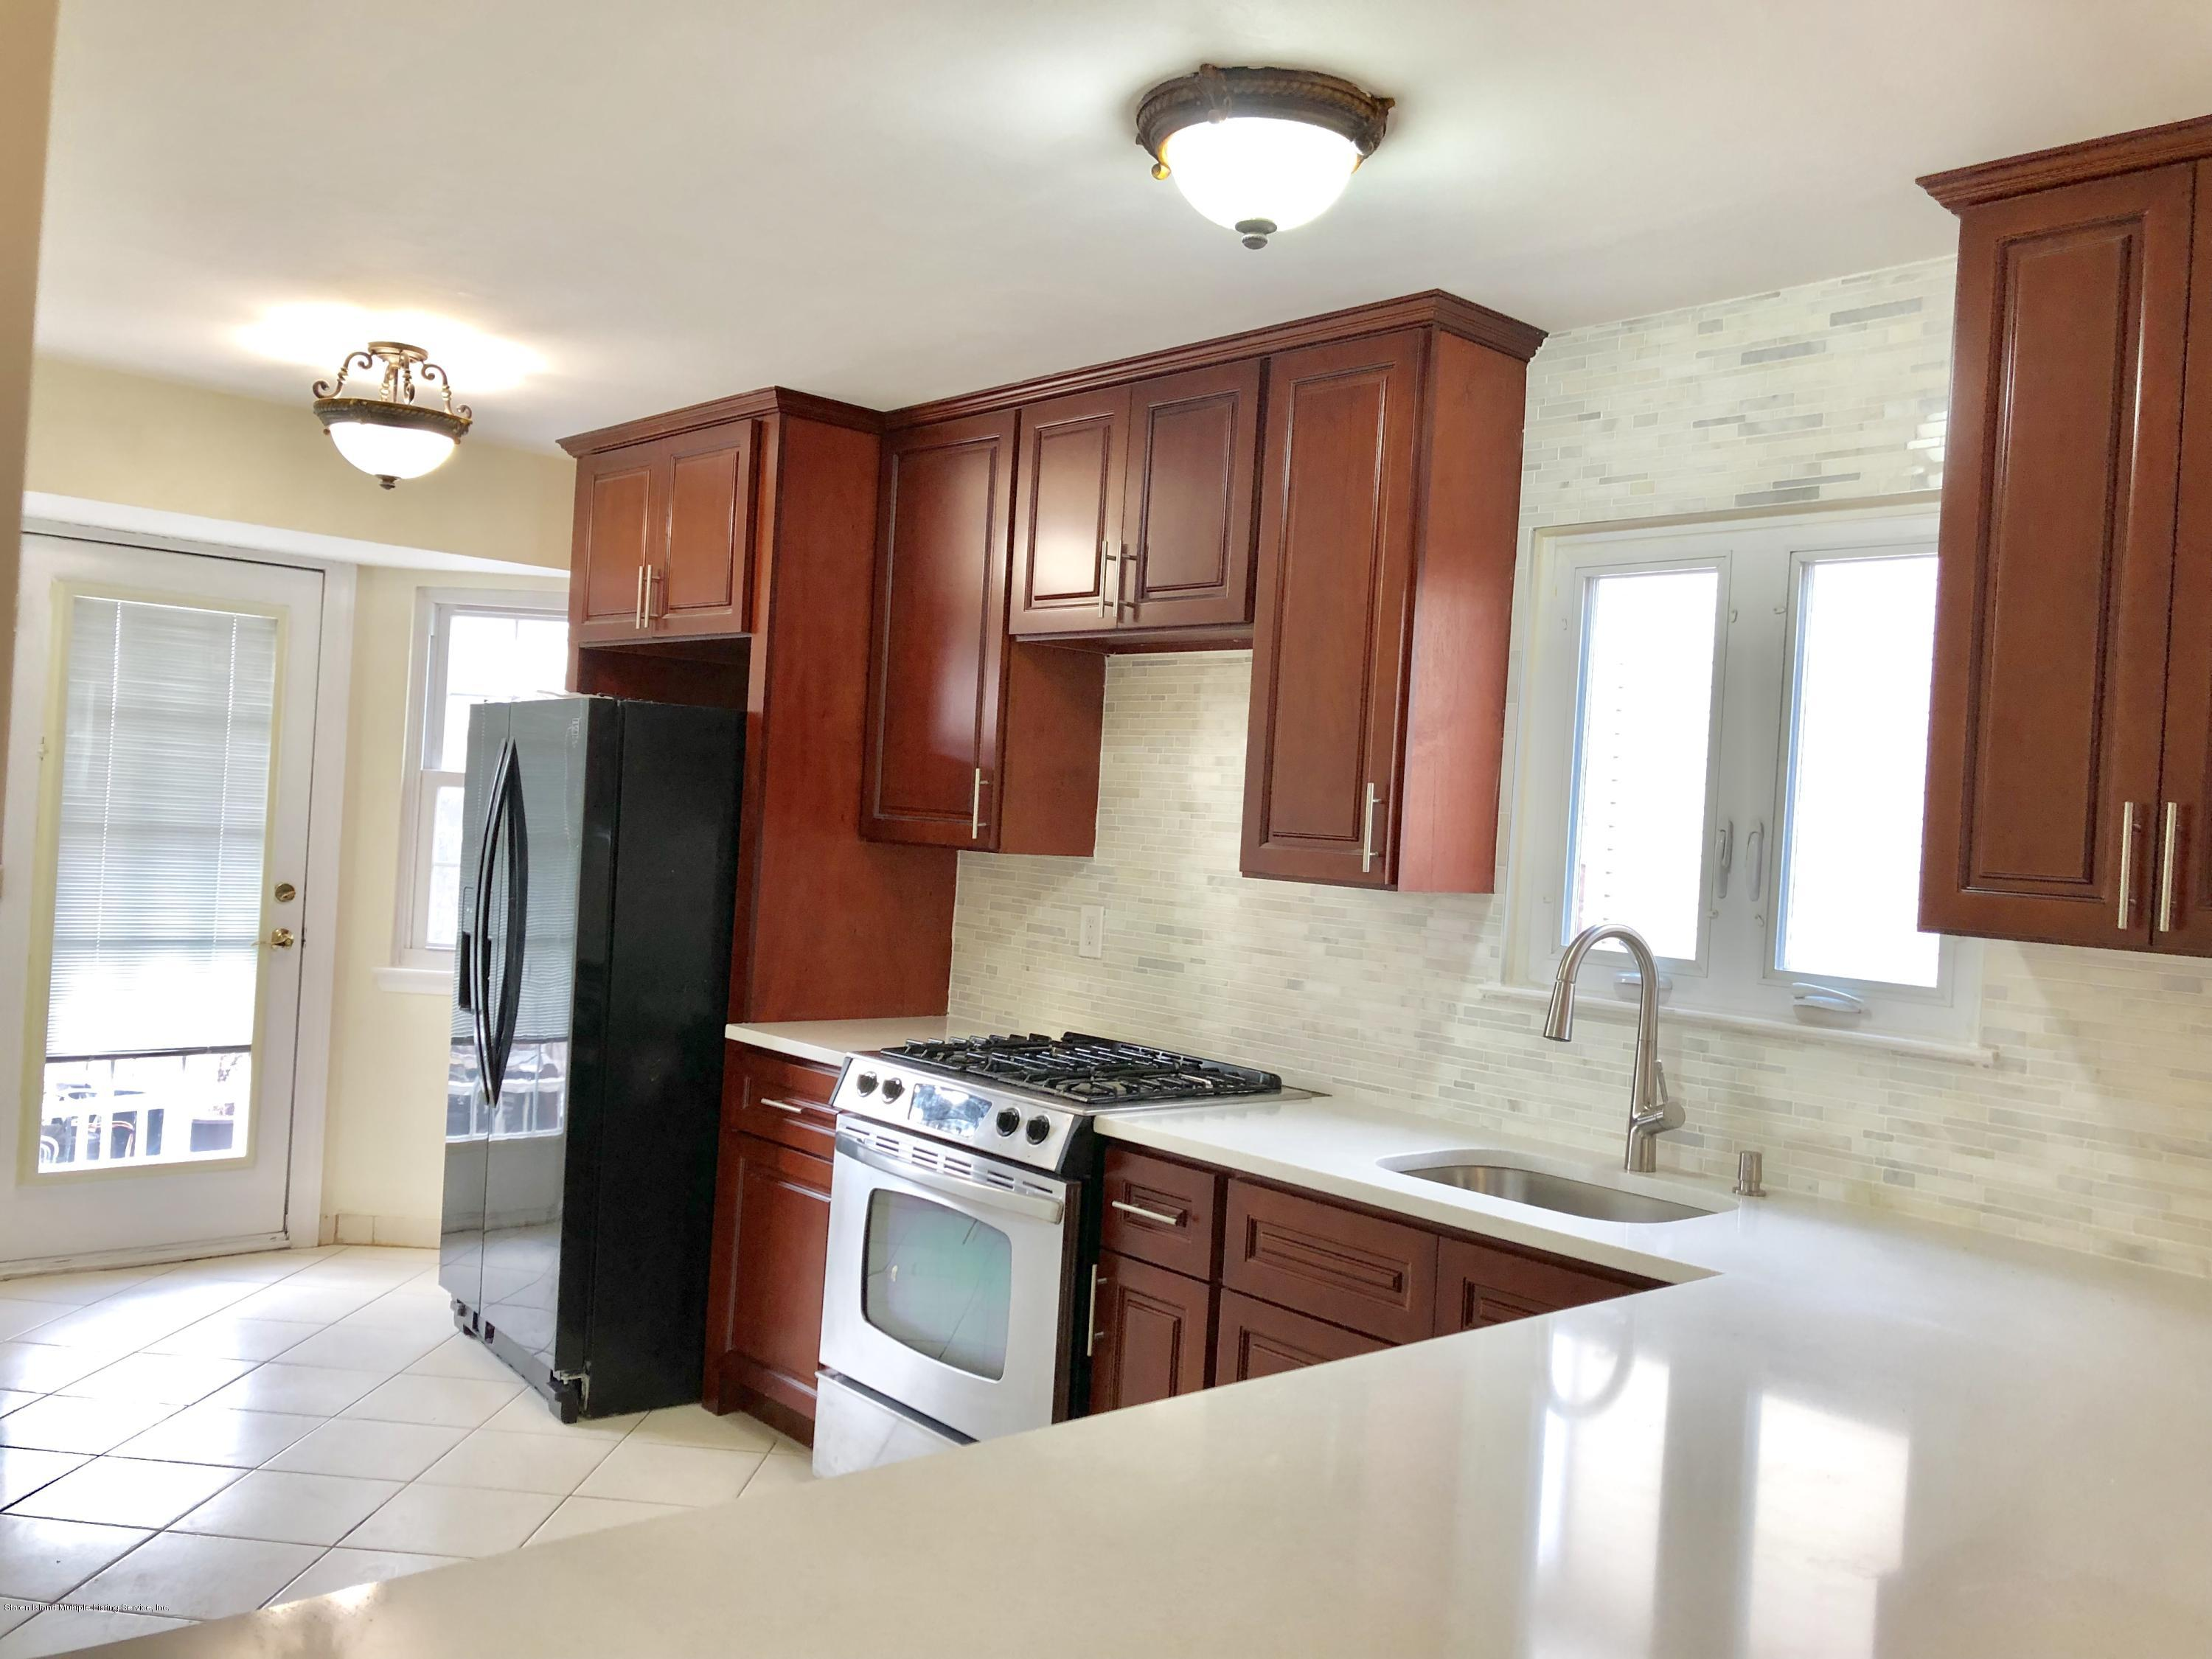 Single Family - Semi-Attached 205 Mcveigh Avenue  Staten Island, NY 10314, MLS-1123847-6